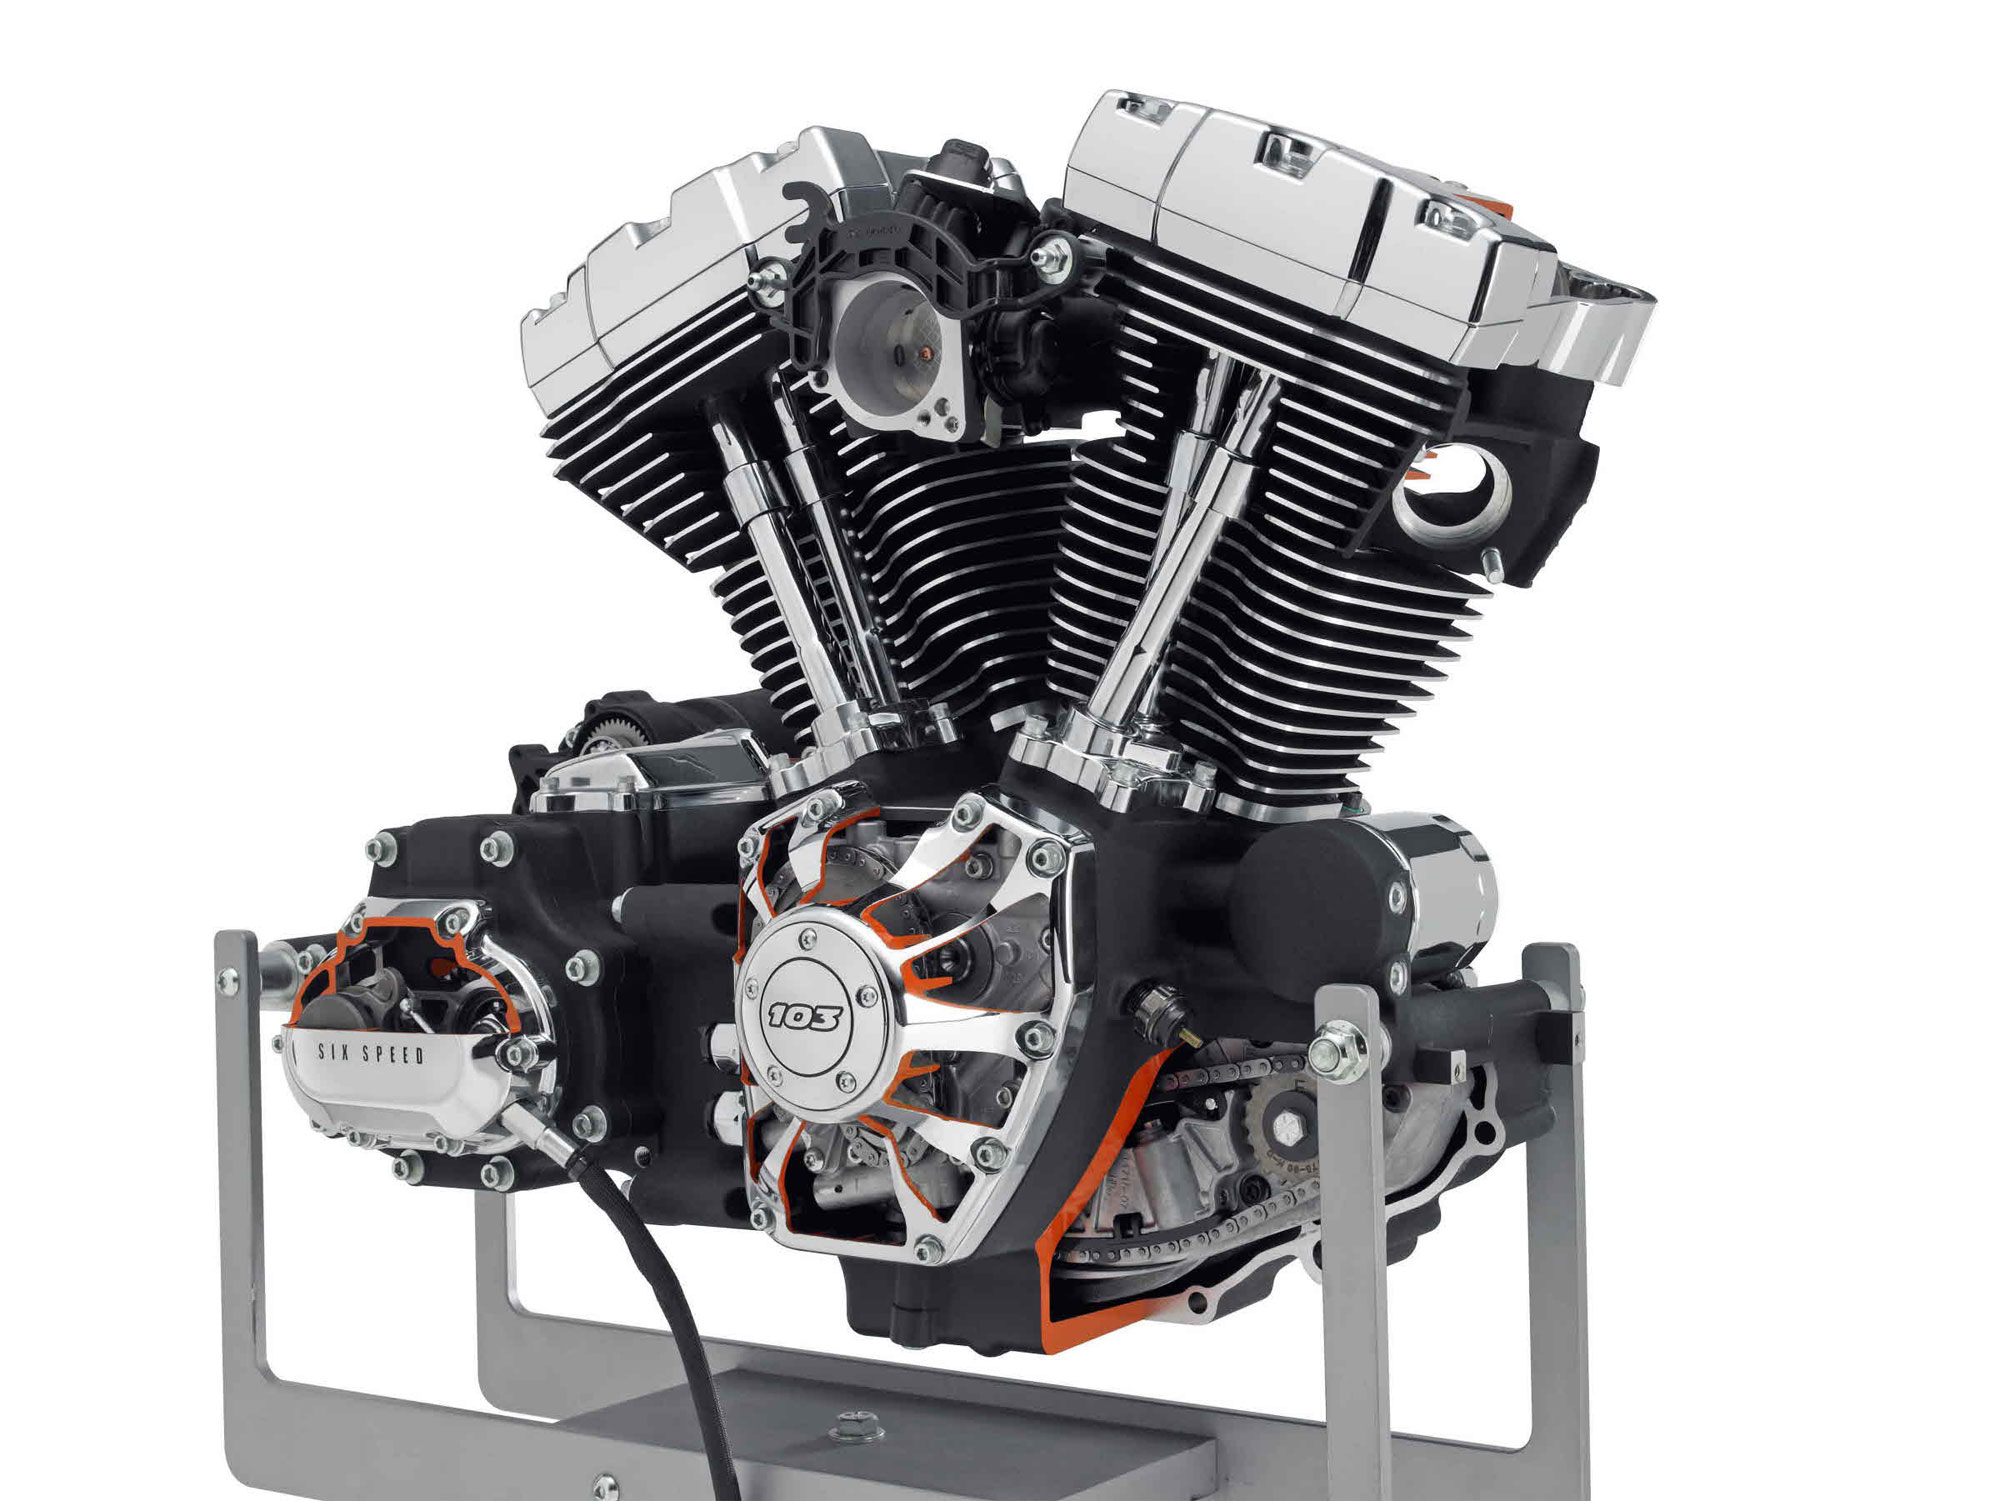 103 twin cam engine